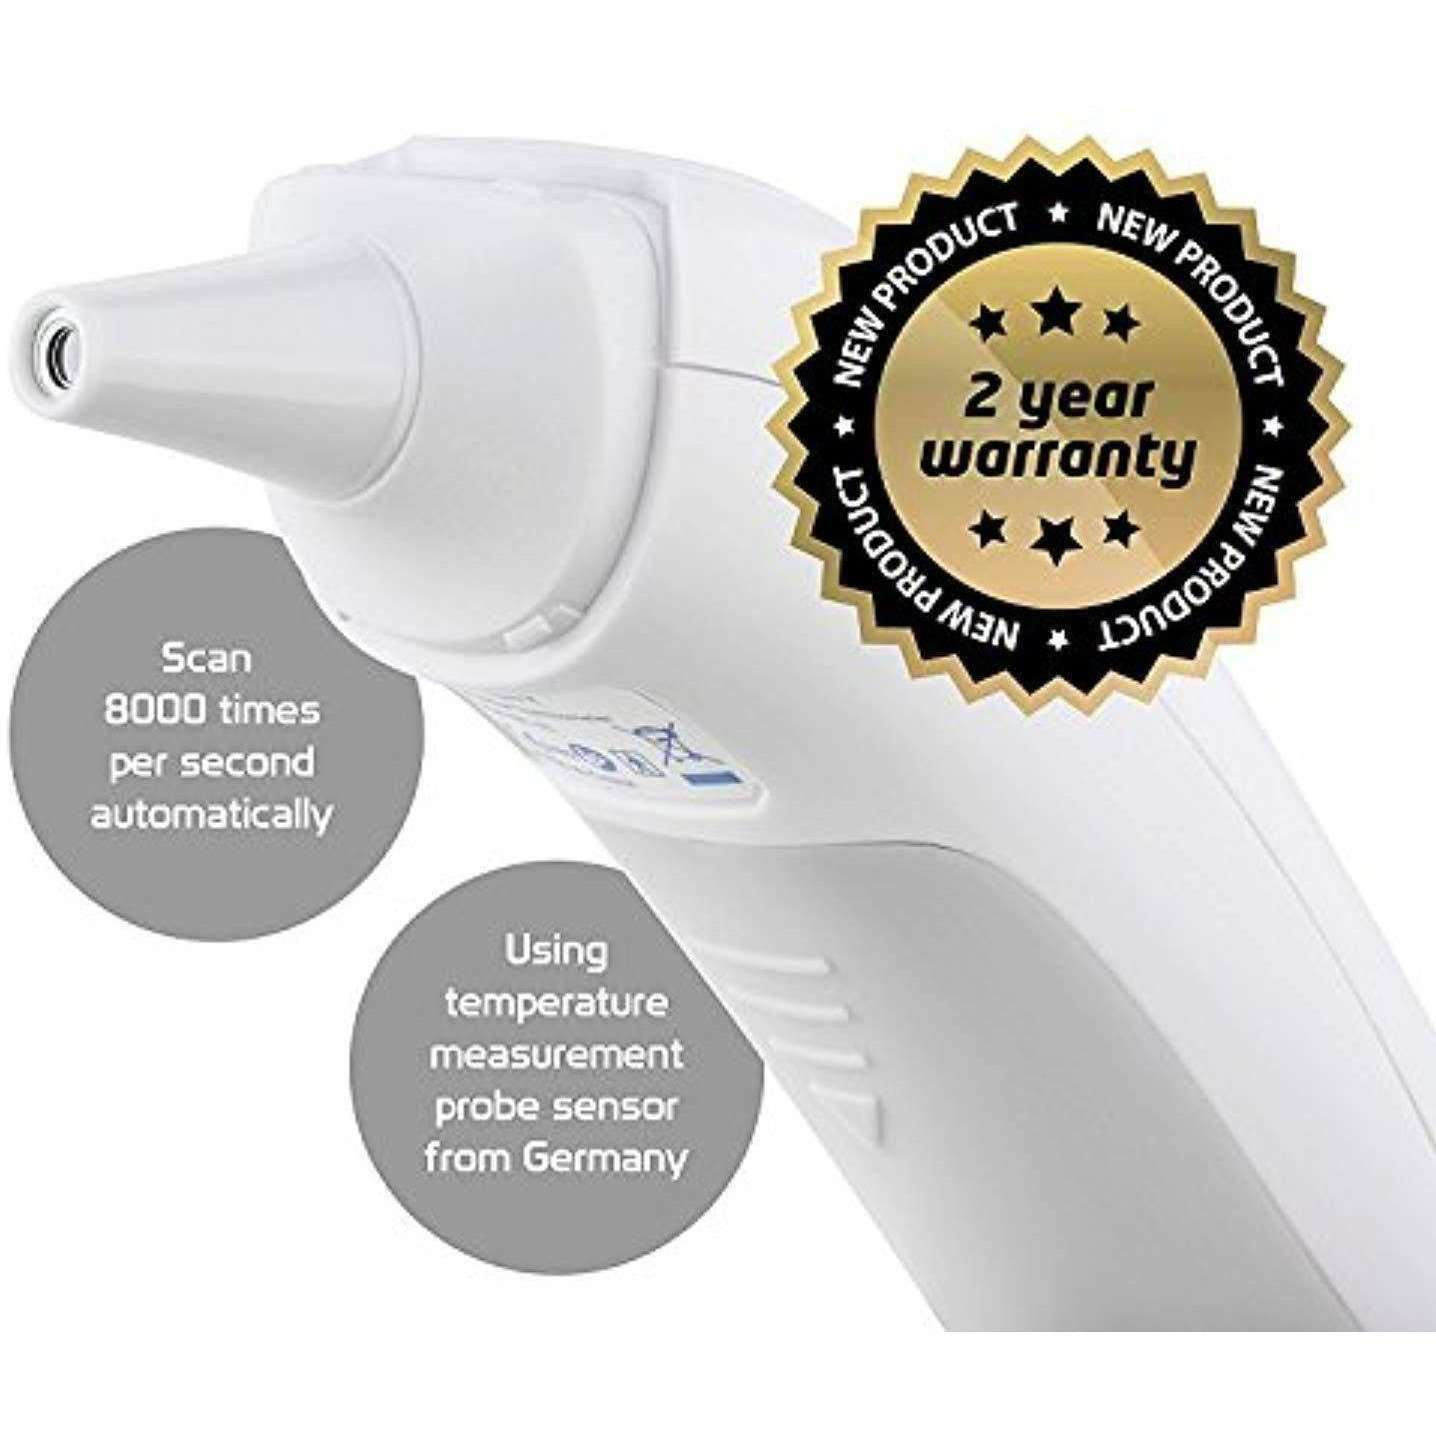 Etekcity Ear Thermometer Infrared Body Thermometer